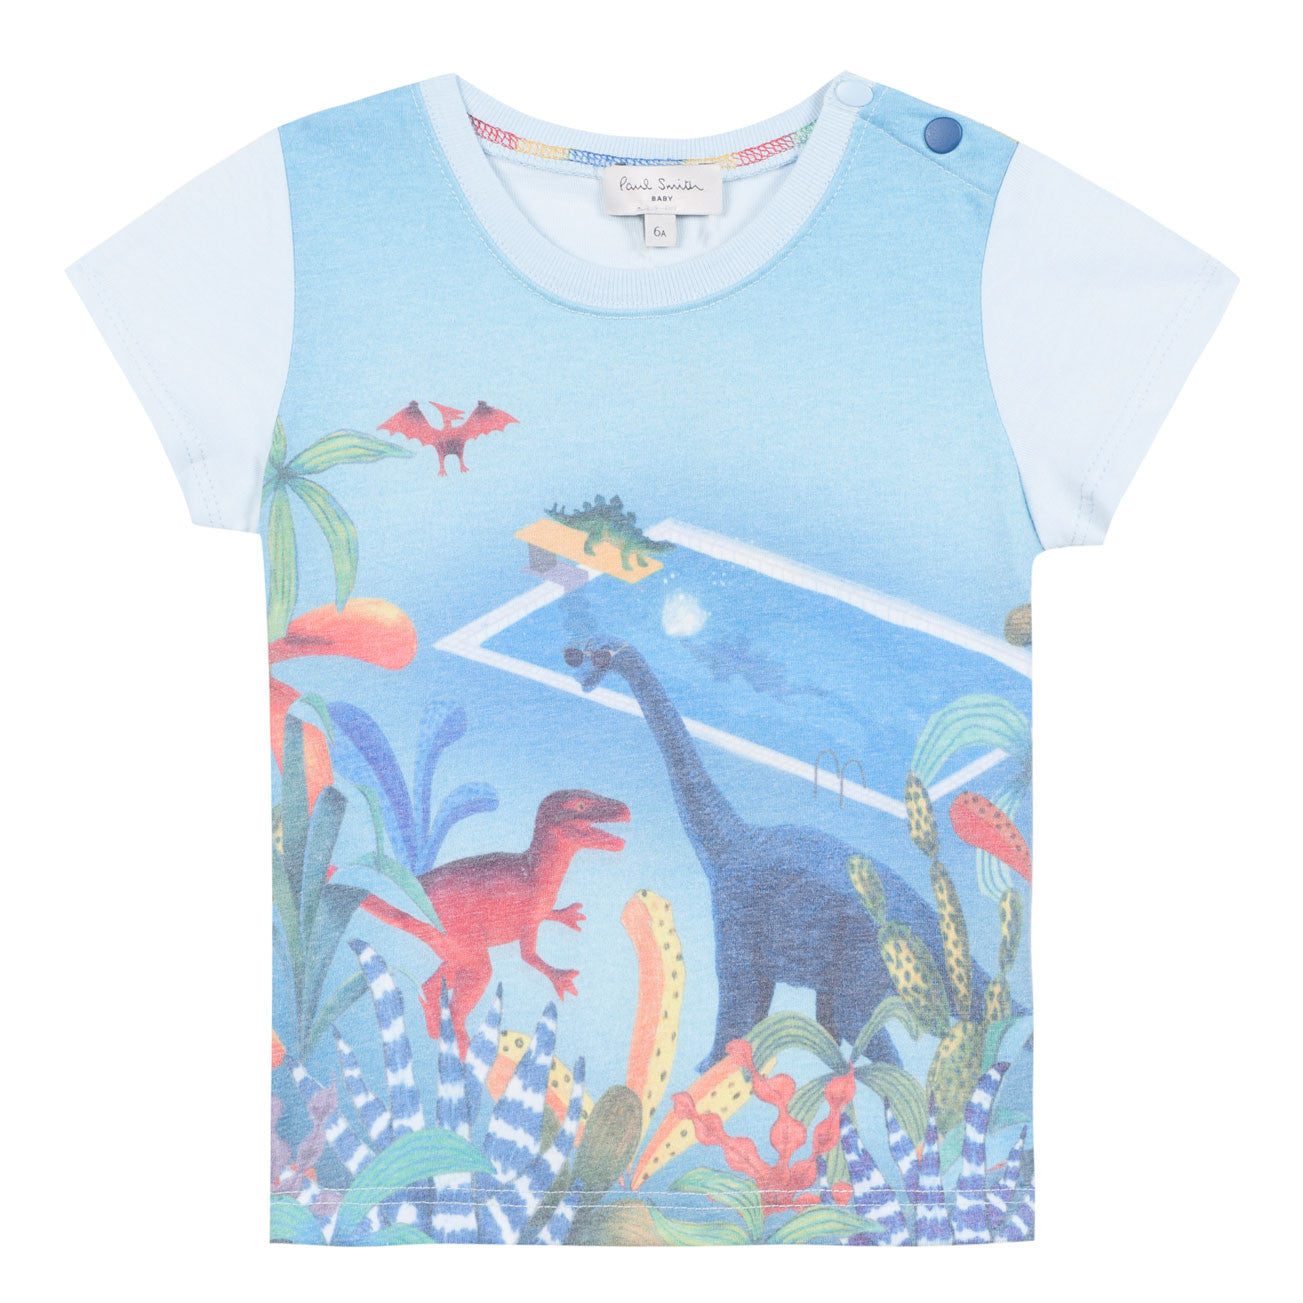 Paul Smith Baby Dinosaur Tee